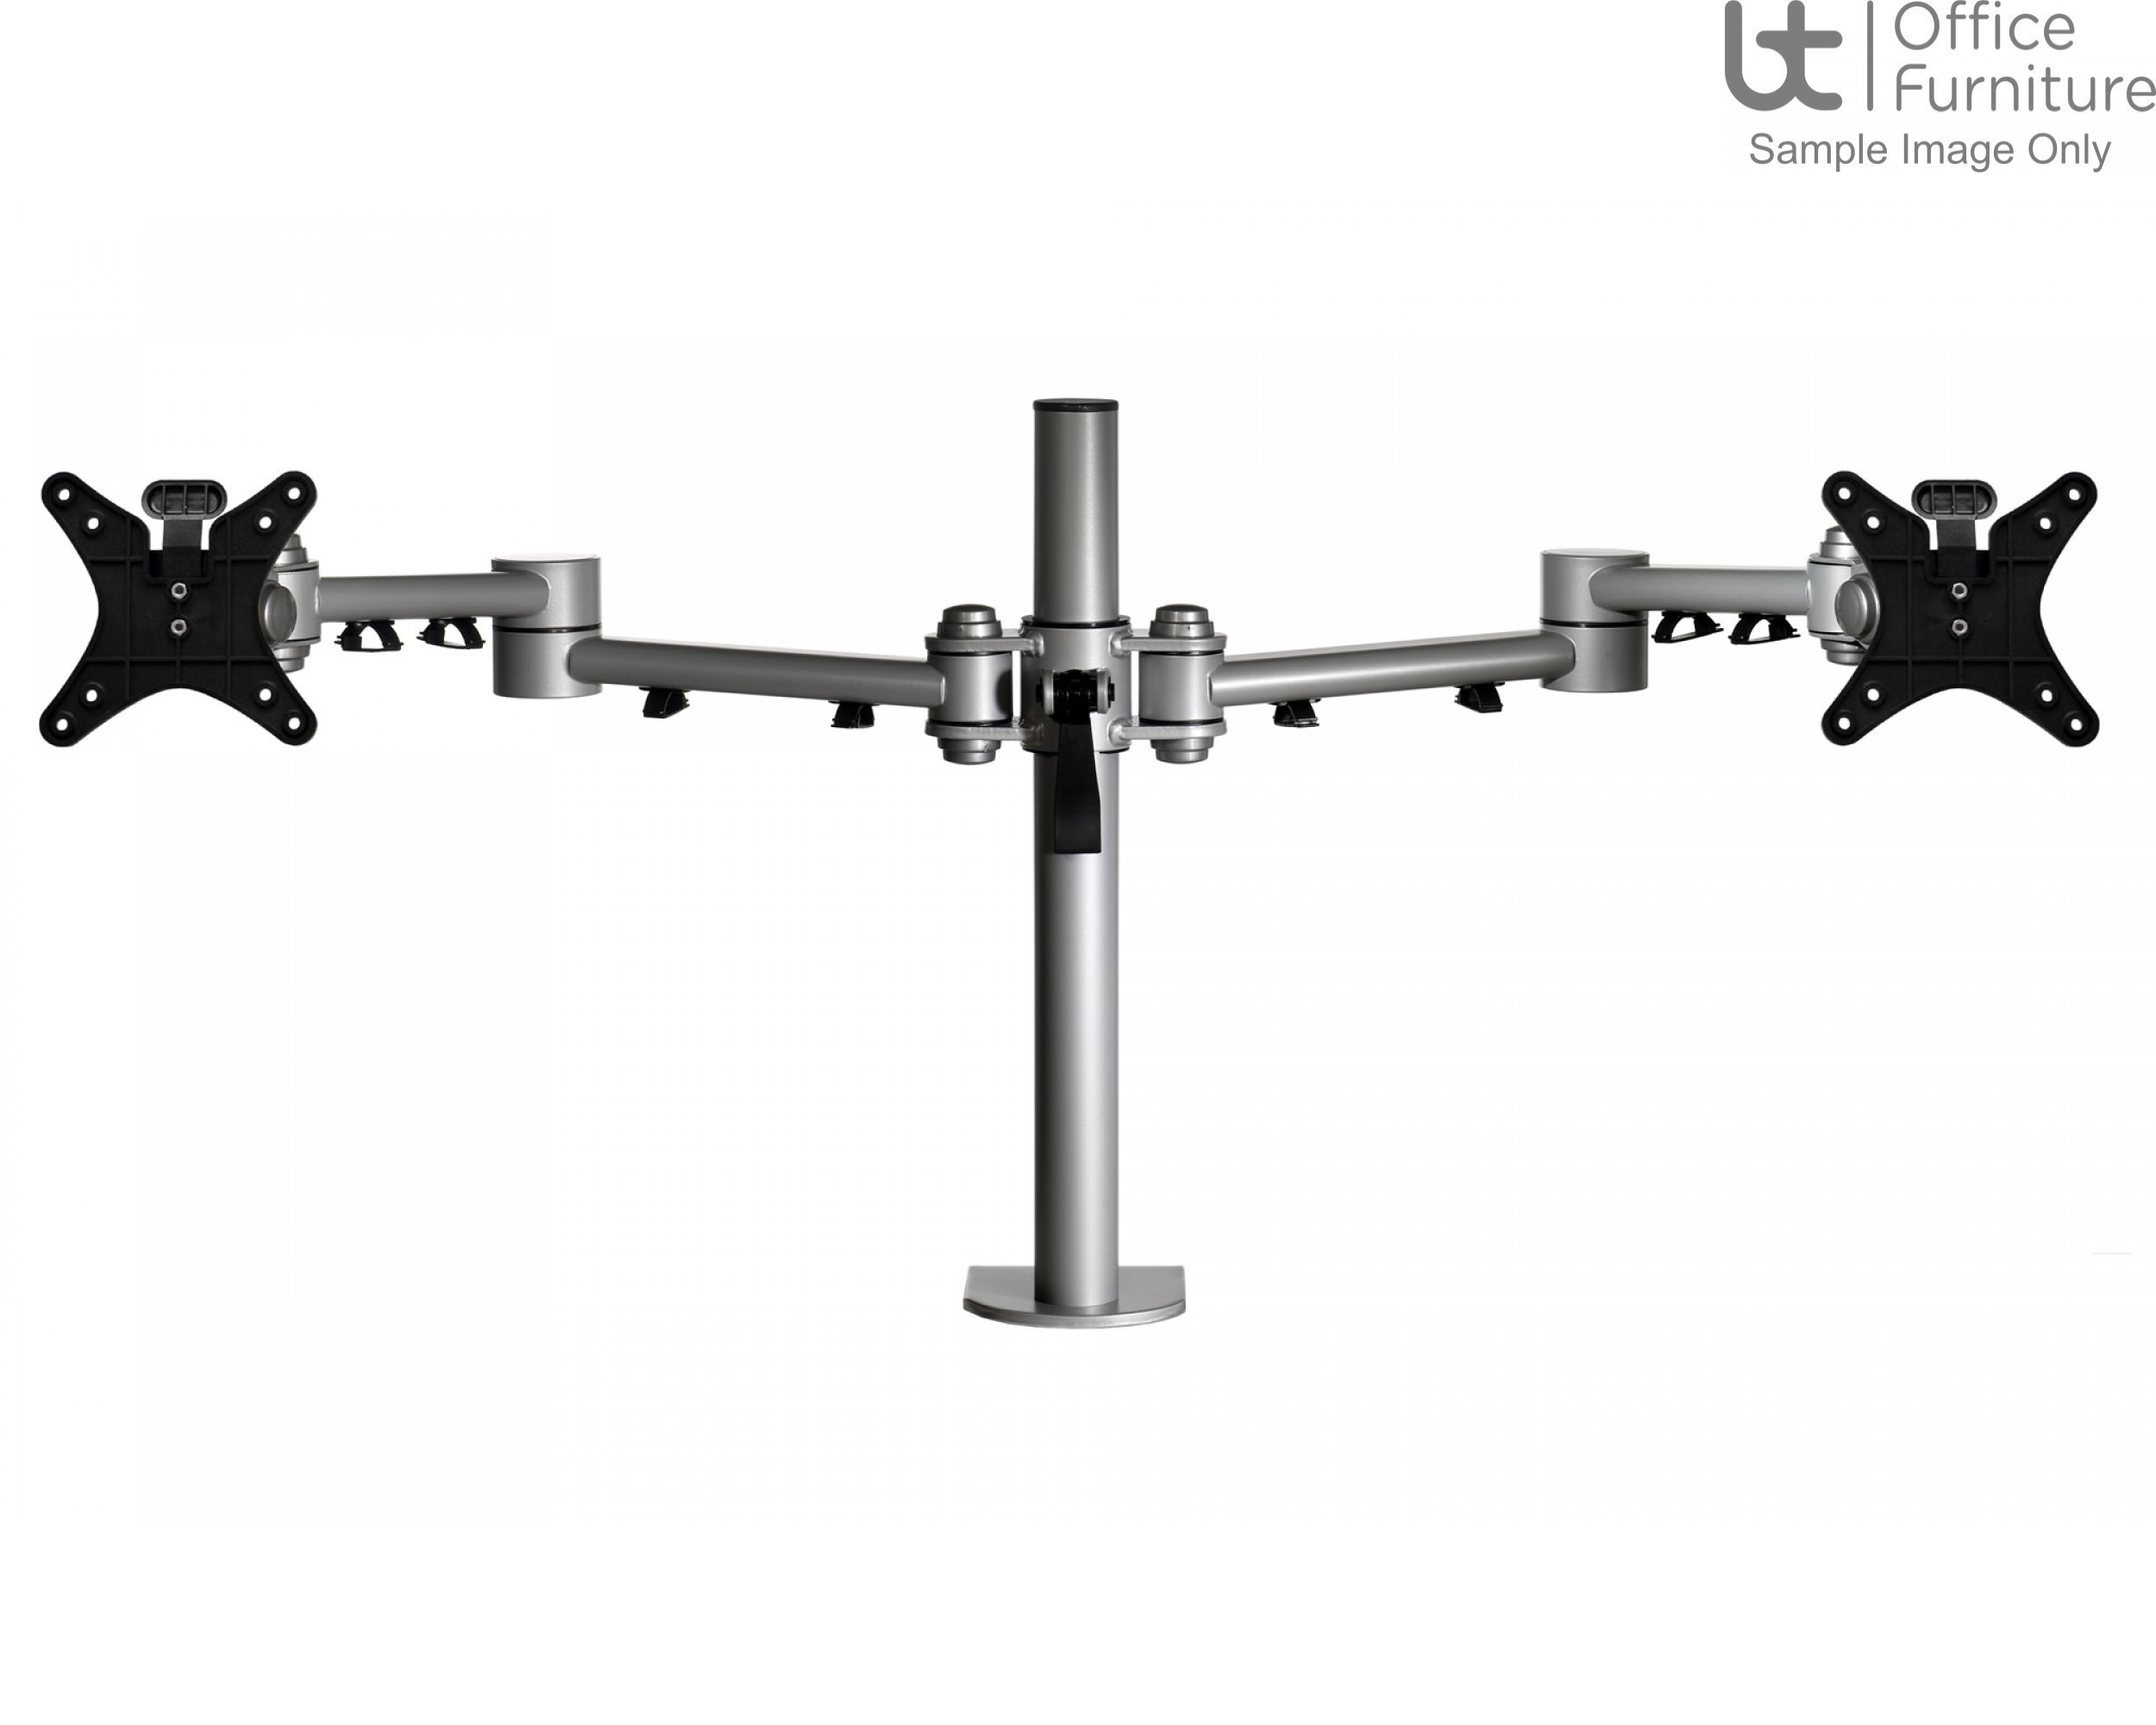 DMC Vision Heavy Duty double pole monitor arm with C clamp, bolt through & grommet mount fixing kit